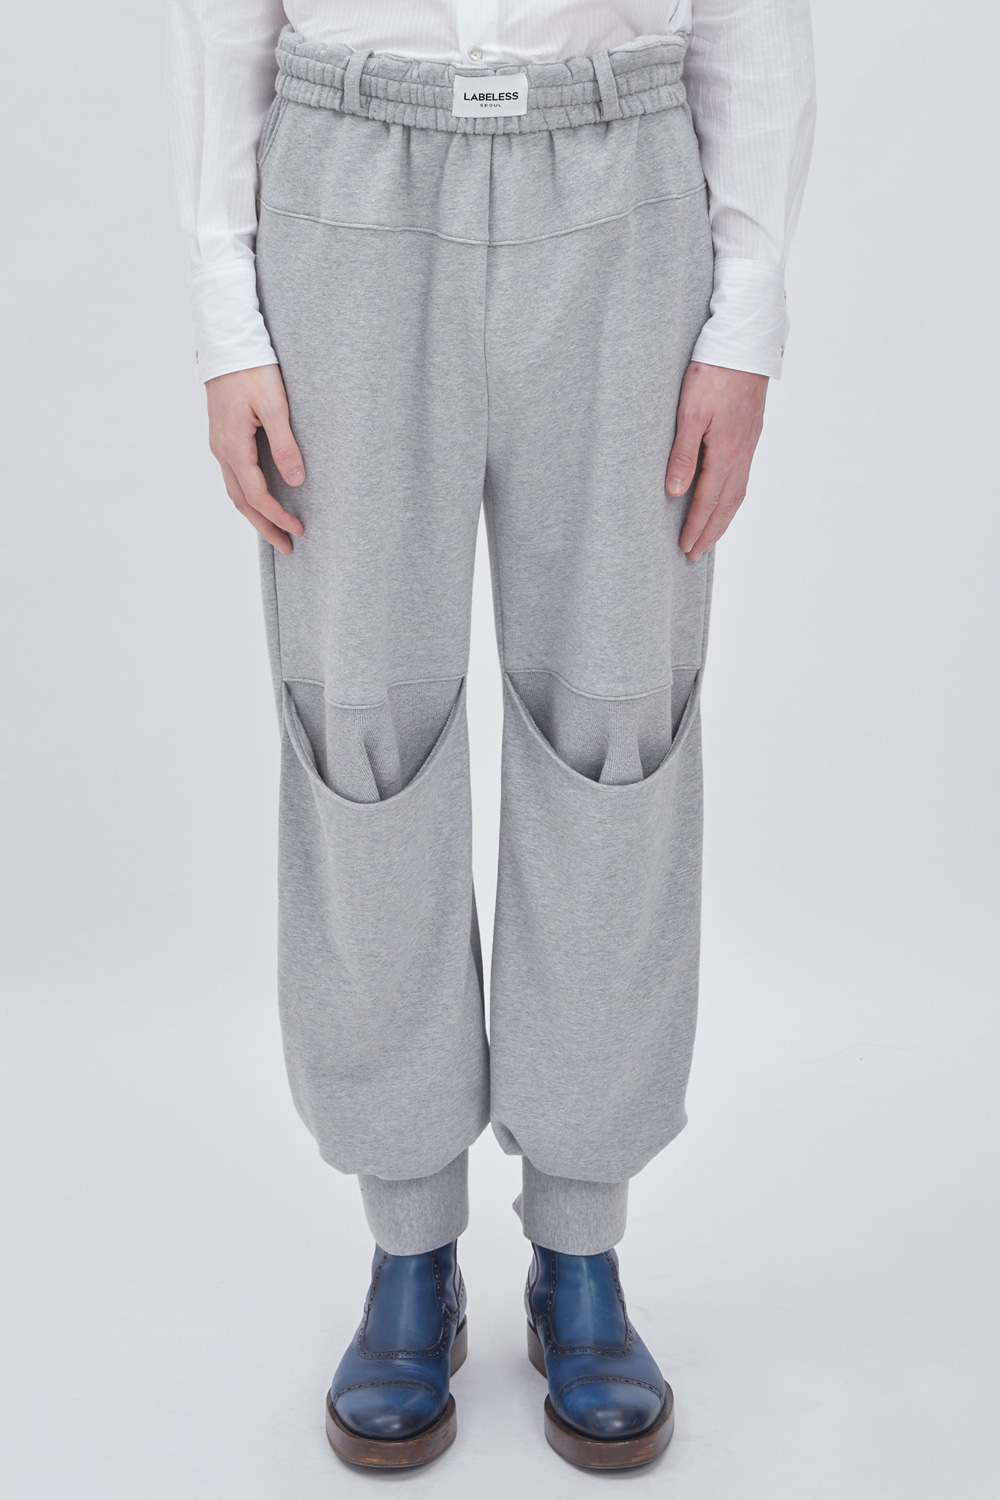 KNEE DARG SWEAT PANTS (GREY)